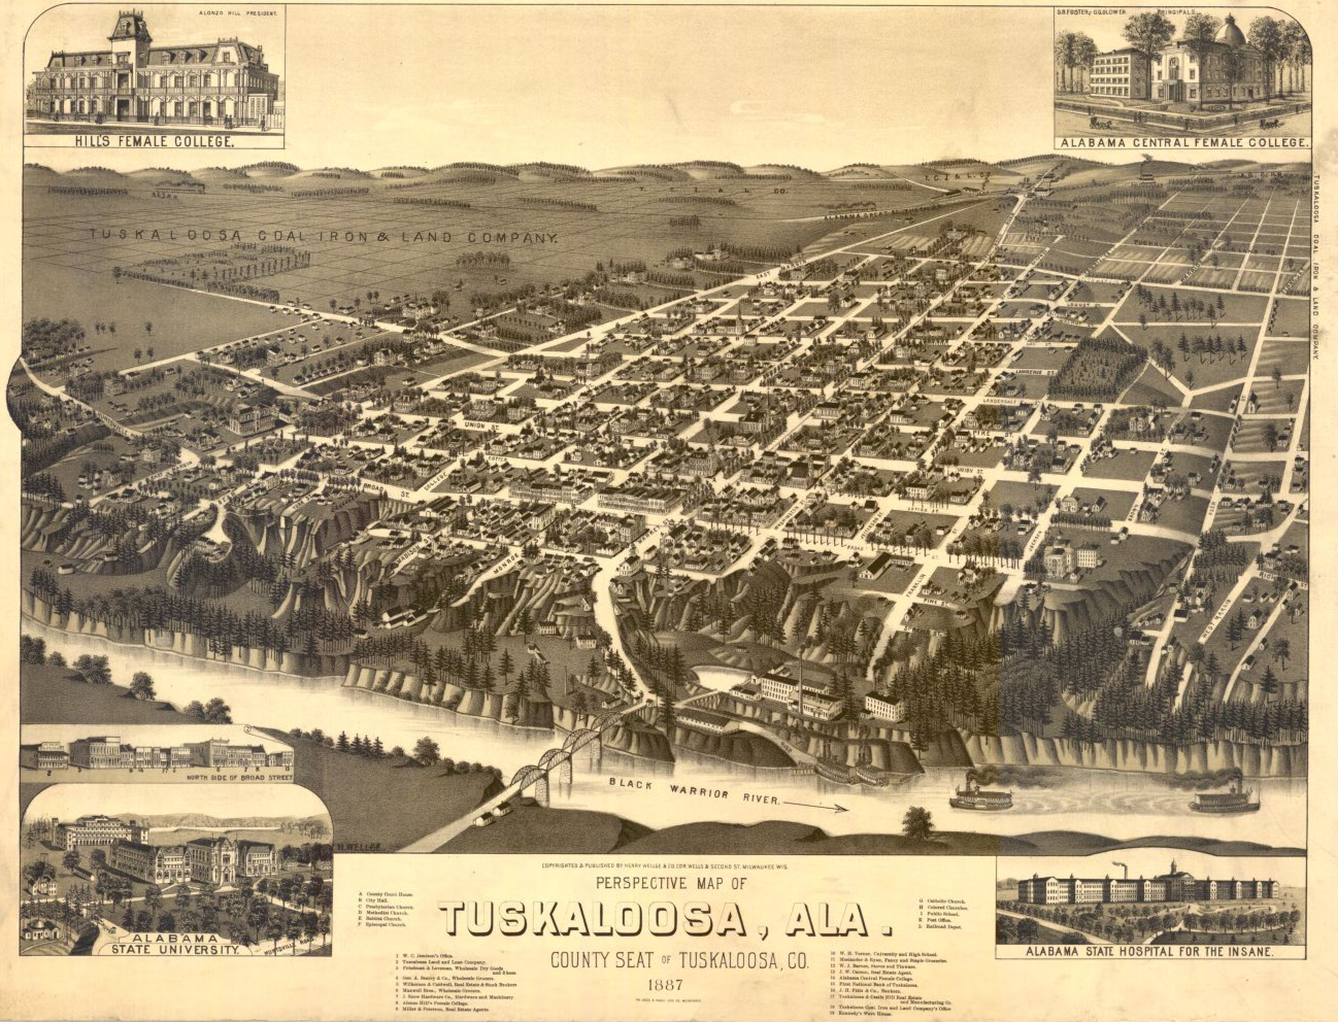 Historic map of Tuscaloosa